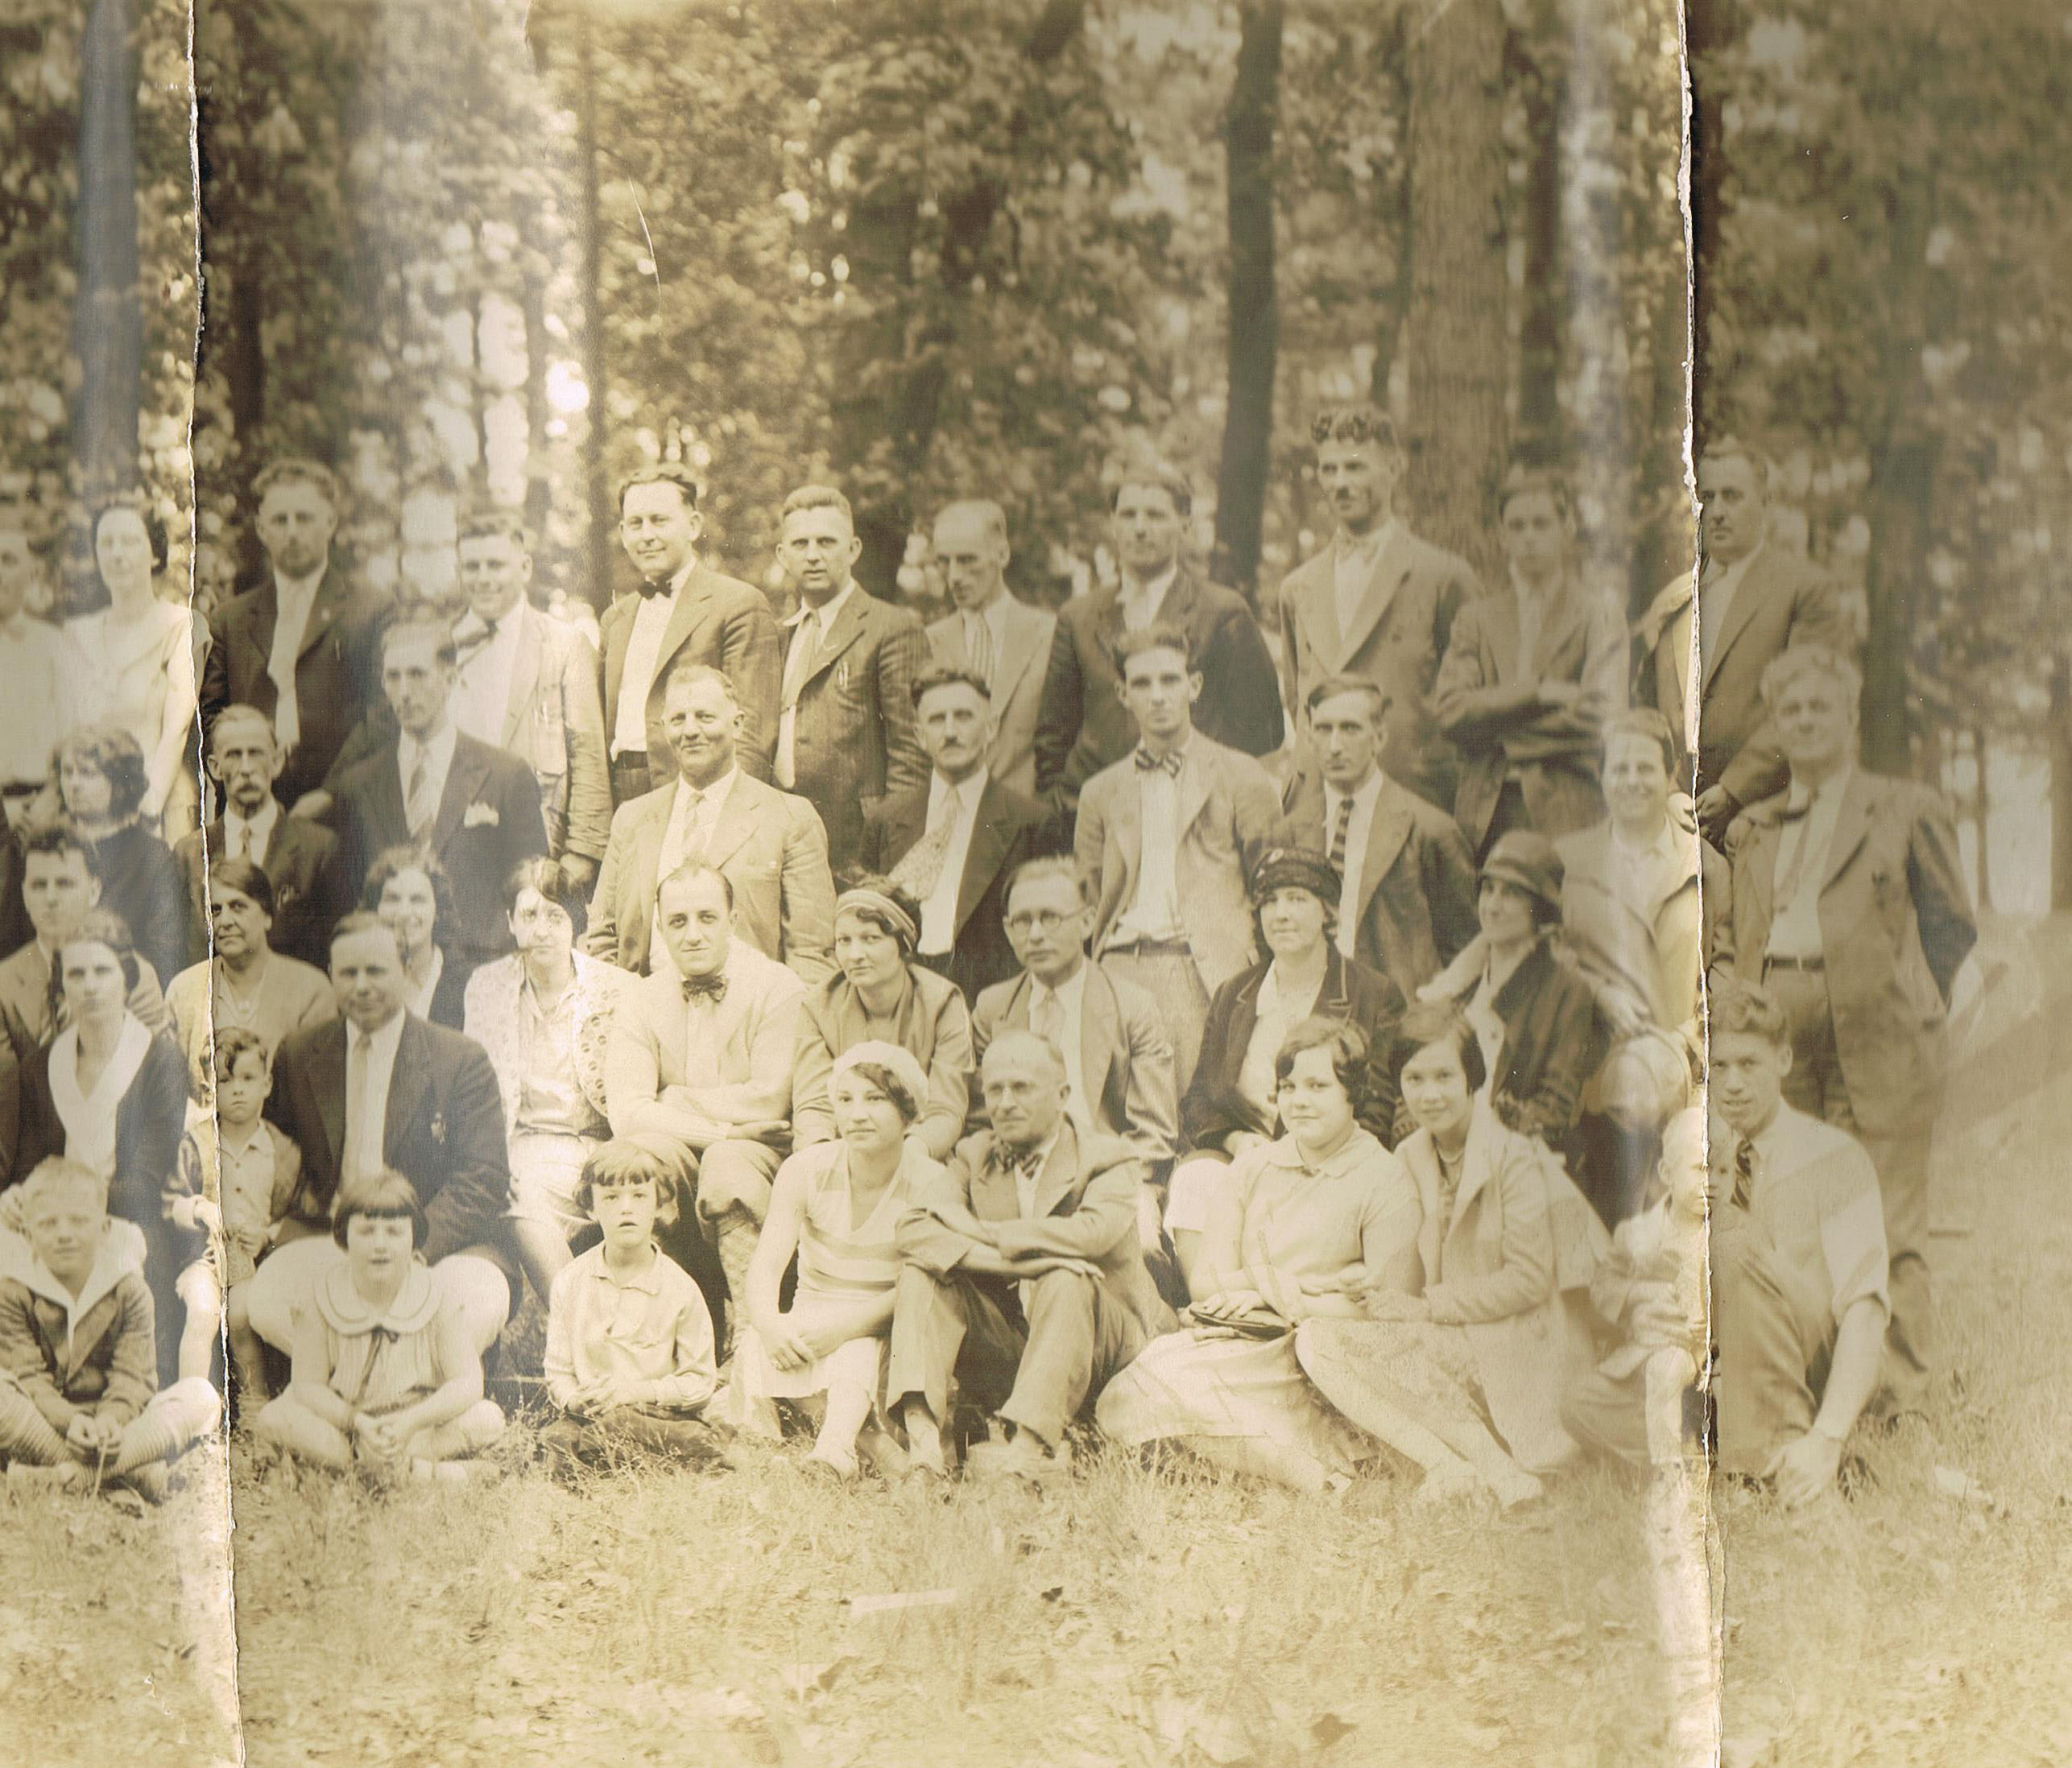 Picnic, 1929. My grandmother is in the bottom row, second adult from the right.